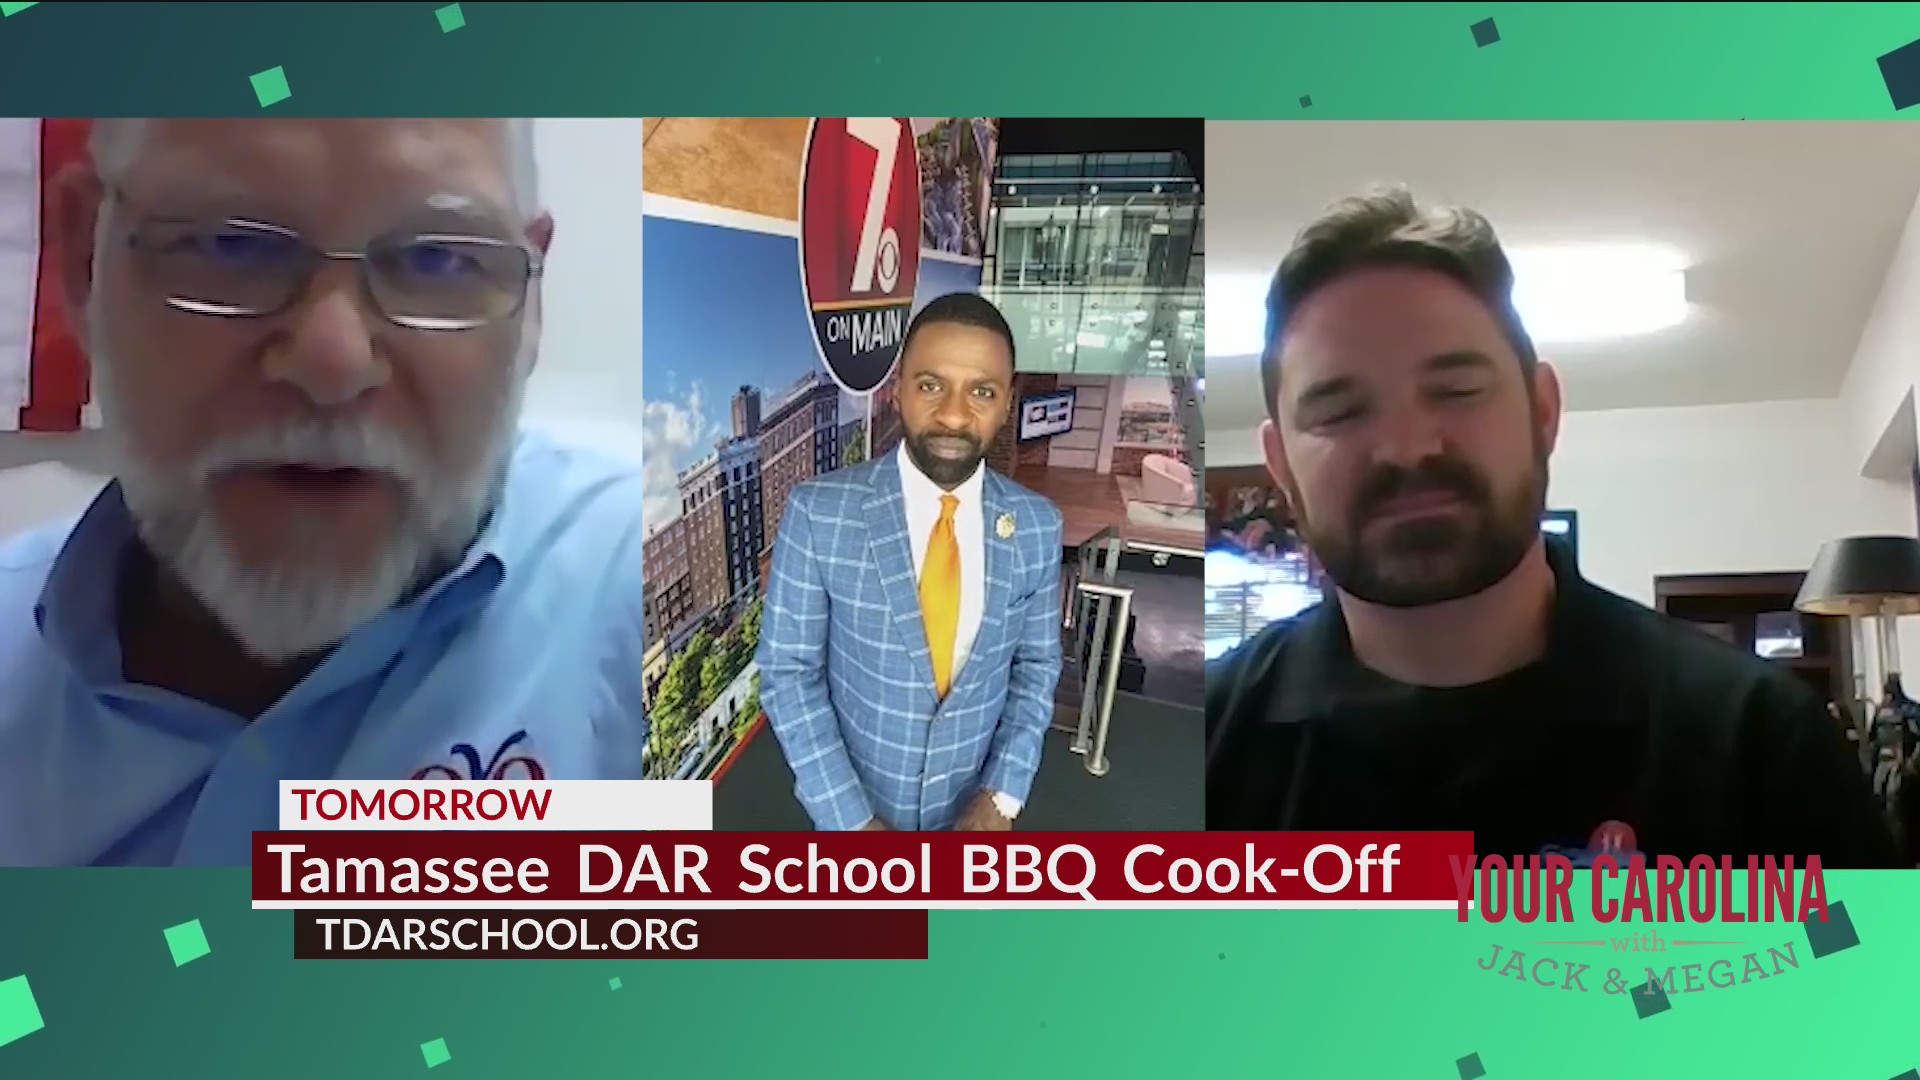 Tamassee DAR School's First Annual Charity Cook-Off